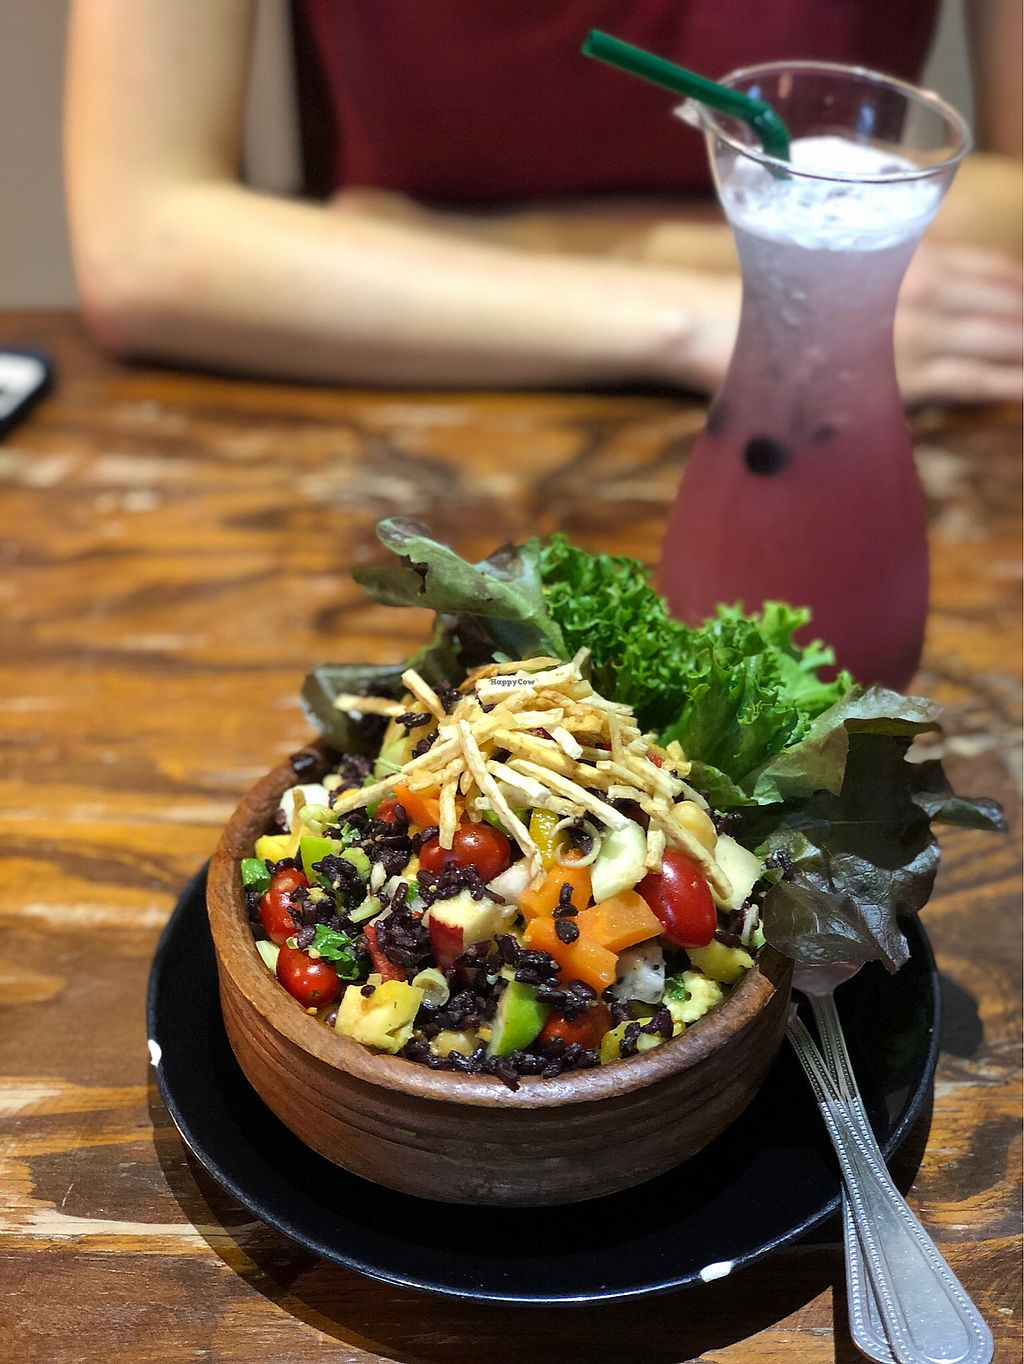 """Photo of Mango  by <a href=""""/members/profile/war.vic"""">war.vic</a> <br/>Brown Rice bowl with Blue lagoon Spritzer <br/> February 14, 2018  - <a href='/contact/abuse/image/46661/359218'>Report</a>"""